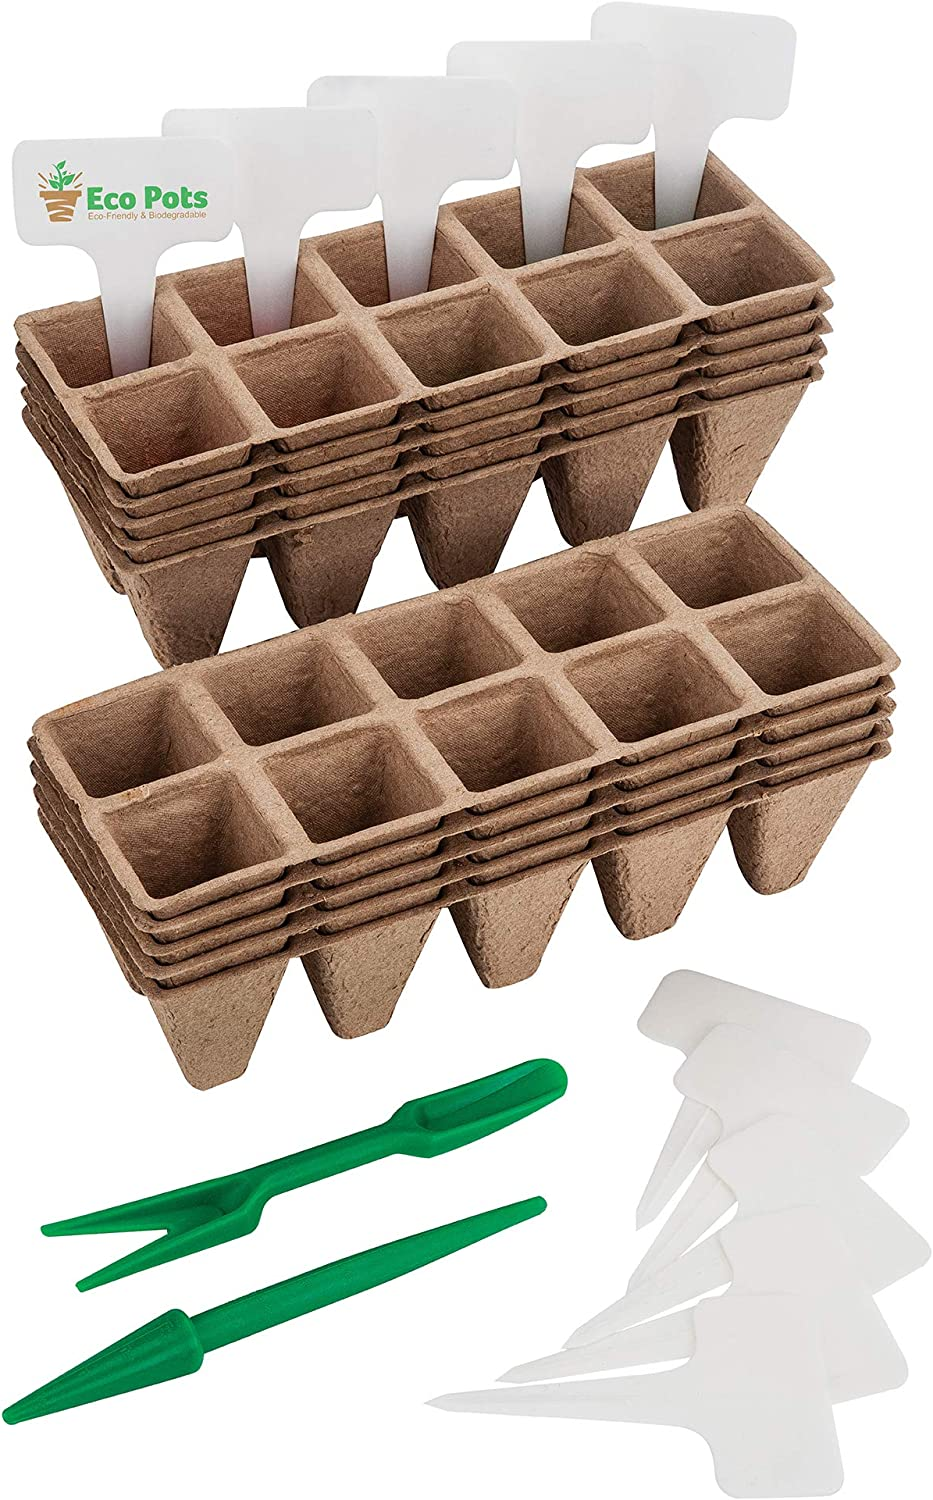 Seed Starter Trays – Organic Plant Peat Pots – Biodegradable Seedling Planting Kit for Indoor Outdoor Plants, 100 Cell Pack with Bonus 10 Plastic Plant Markers, Perfect for Pot Seedling